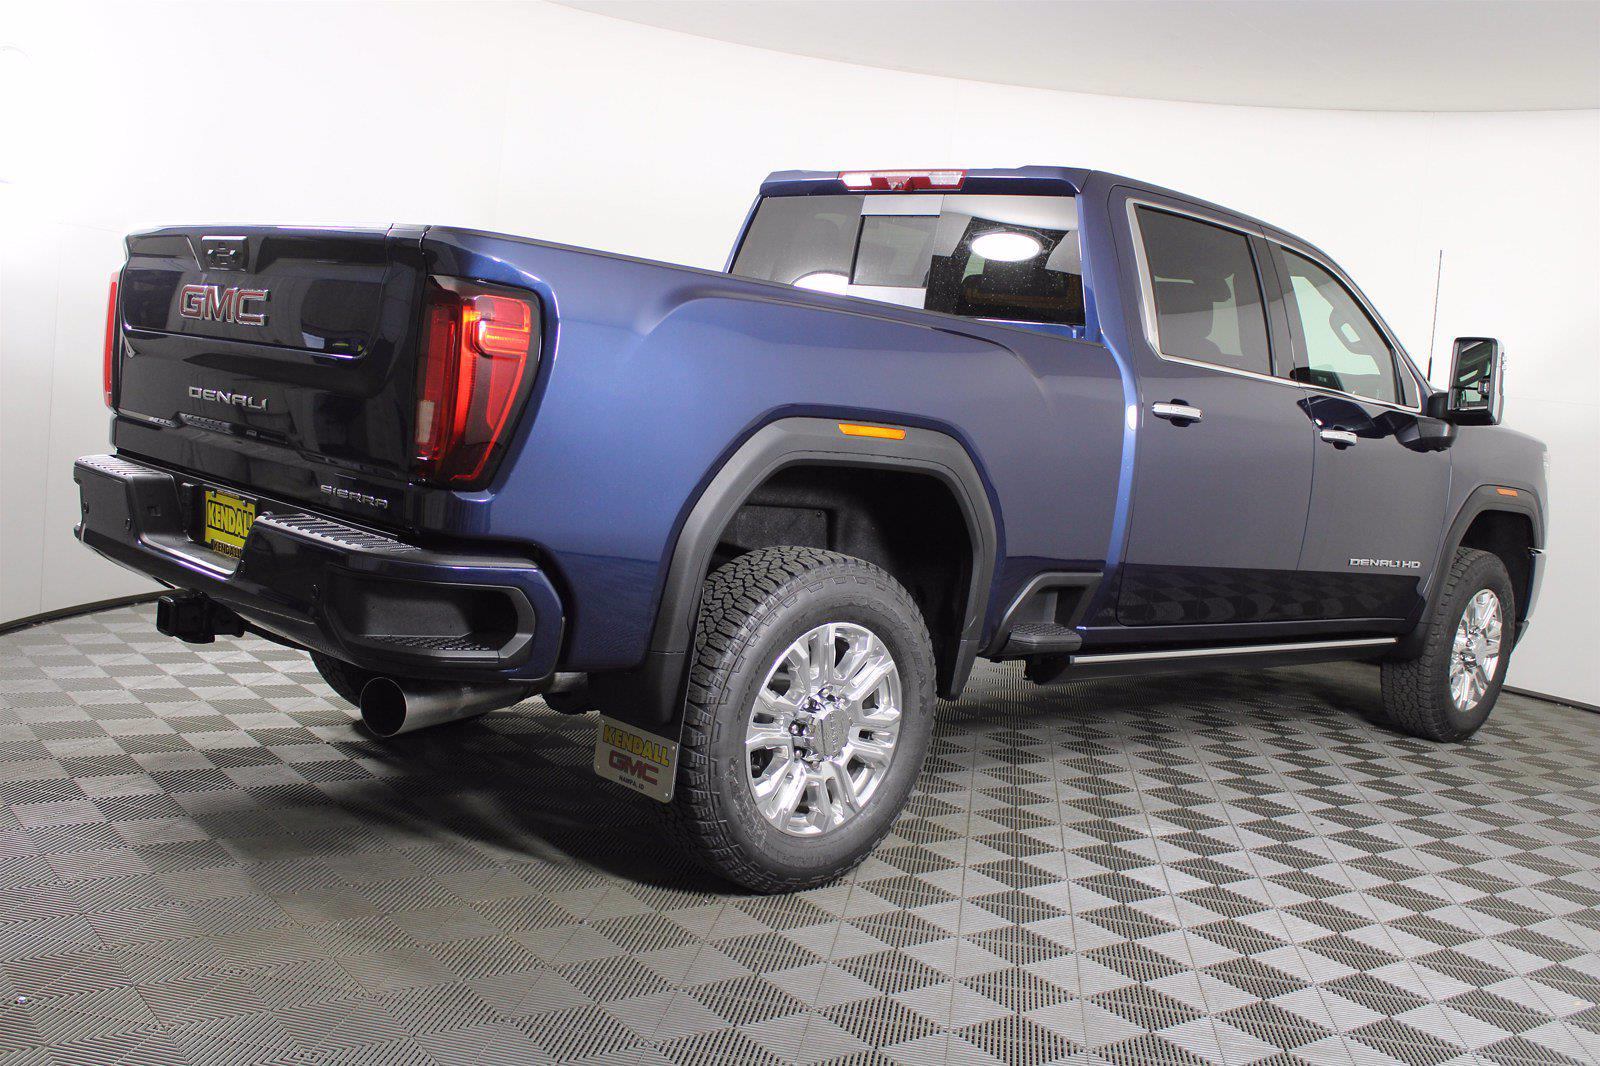 2021 GMC Sierra 2500 Crew Cab 4x4, Pickup #D410852 - photo 6